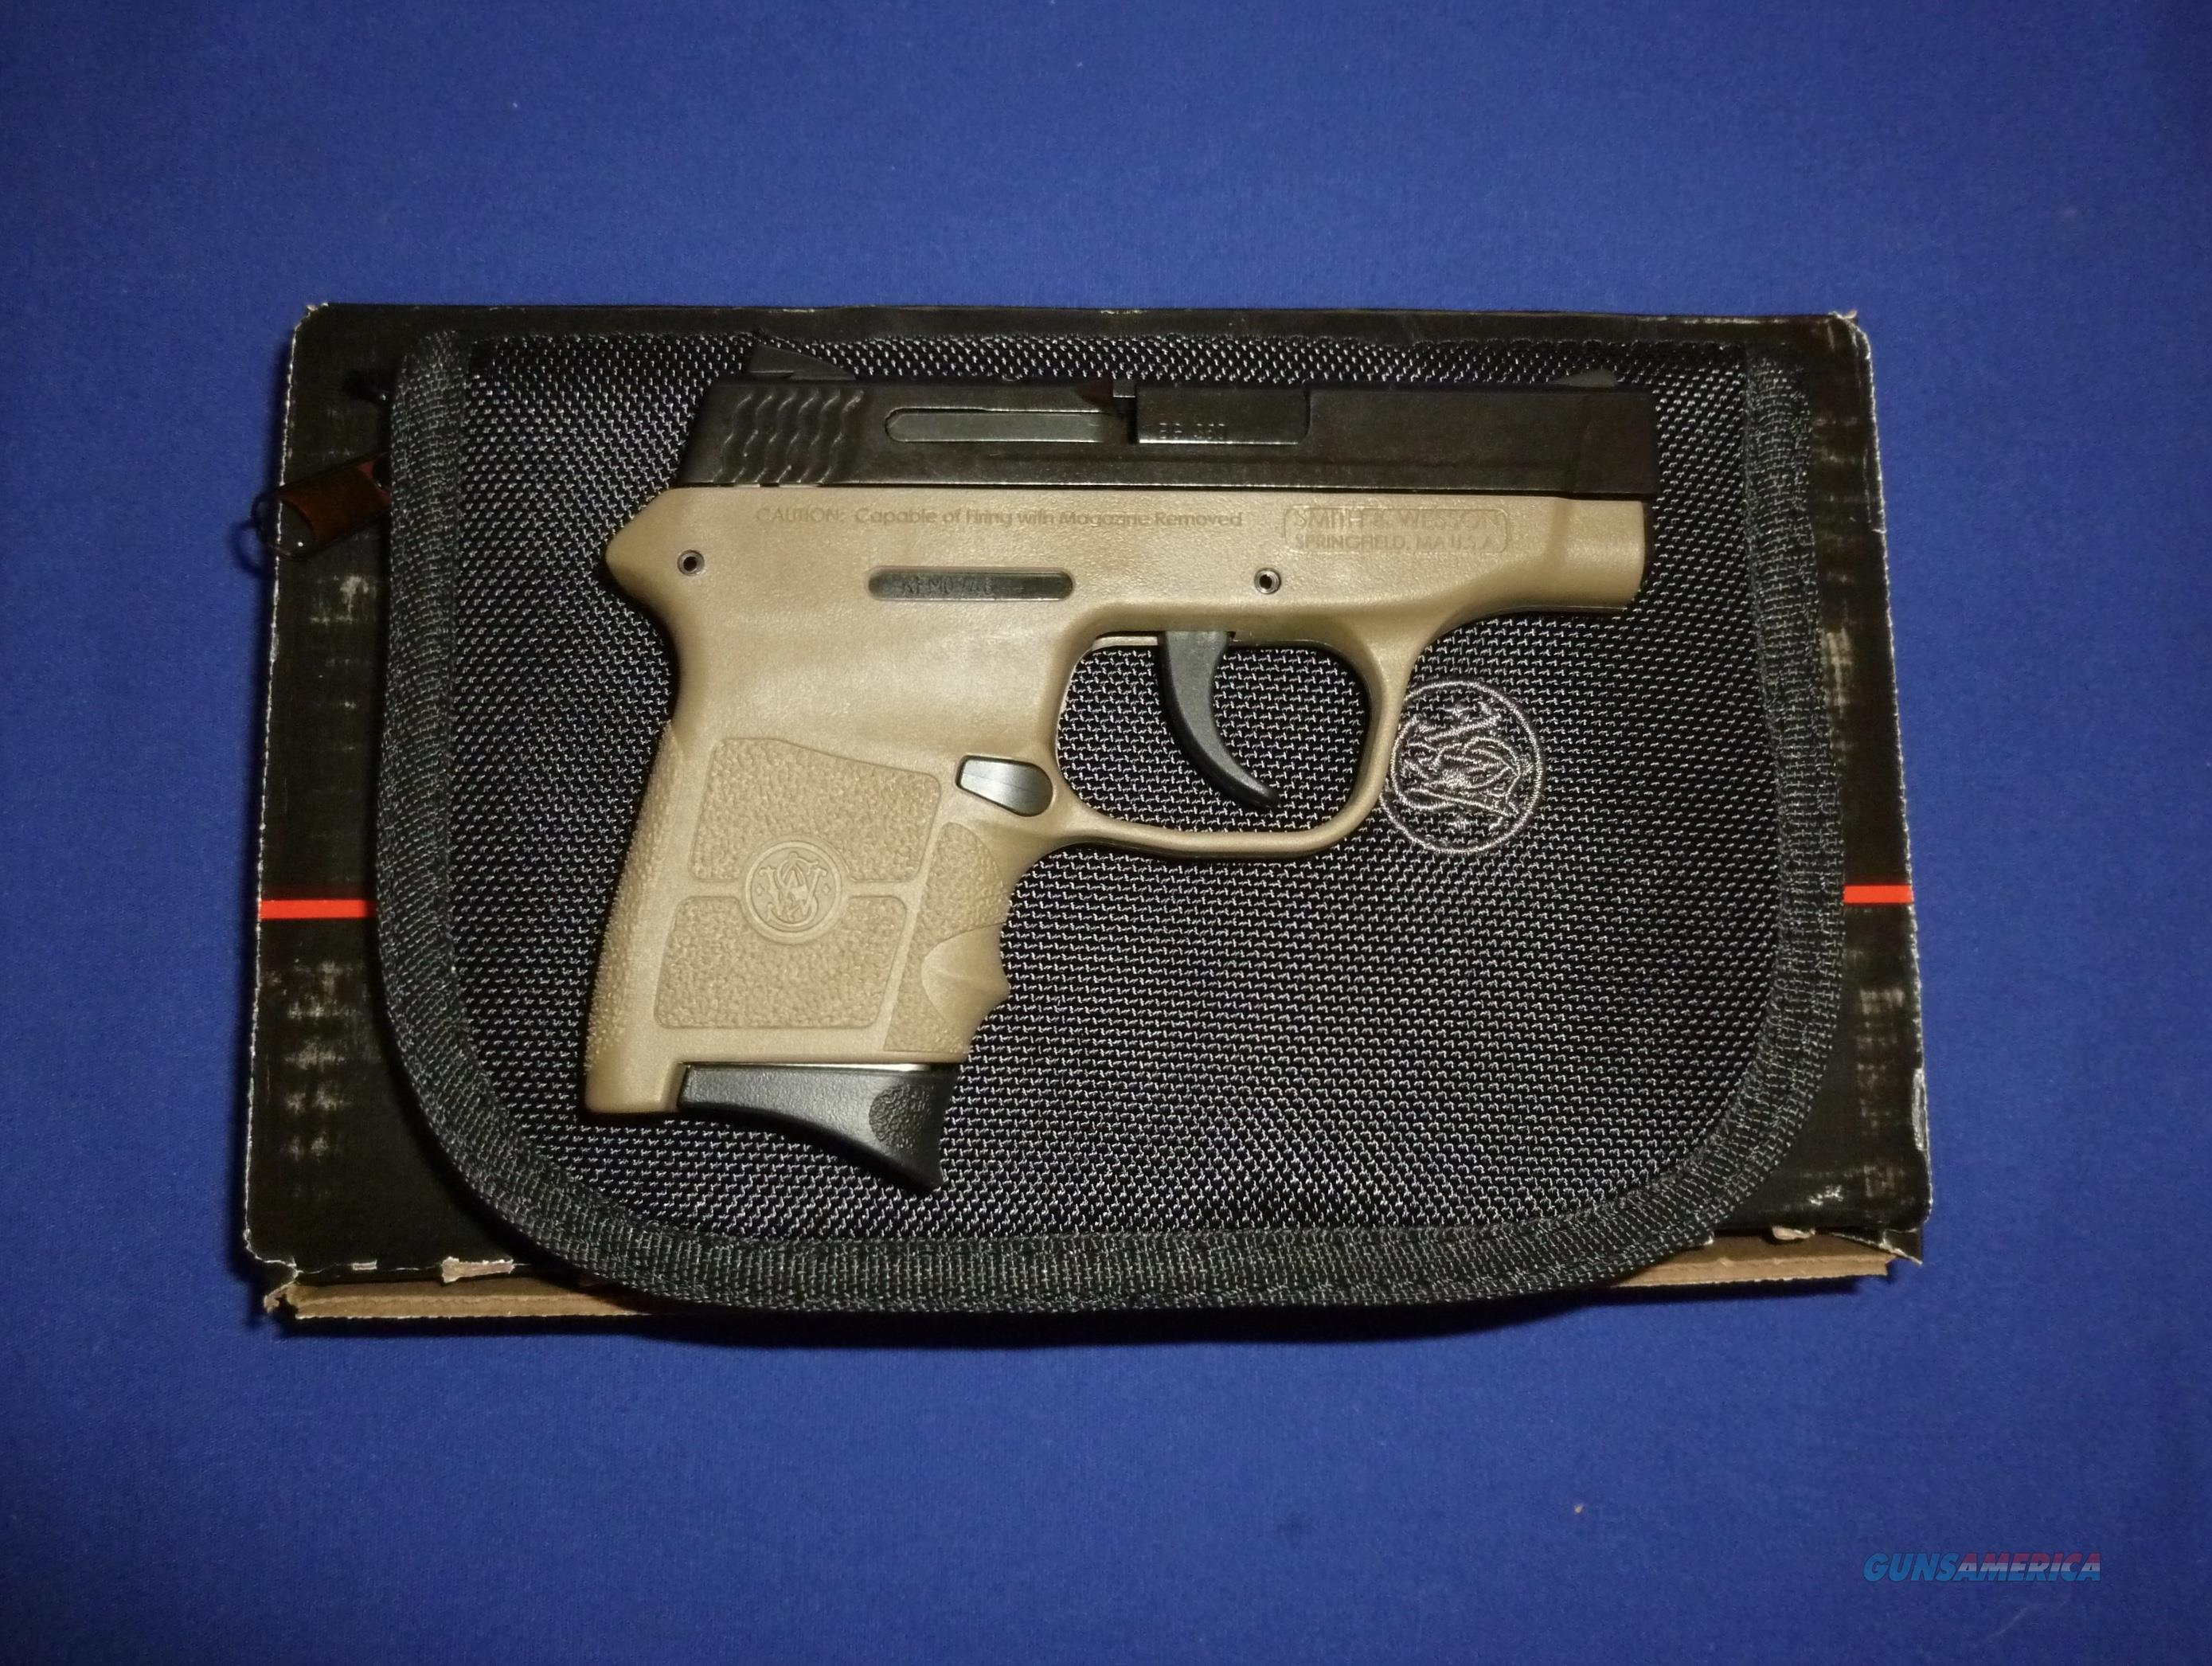 SMITH & WESSON M&P BODYGUARD 380ACP MICRO-COMPACT PISTOL   Guns > Pistols > Smith & Wesson Pistols - Autos > Polymer Frame